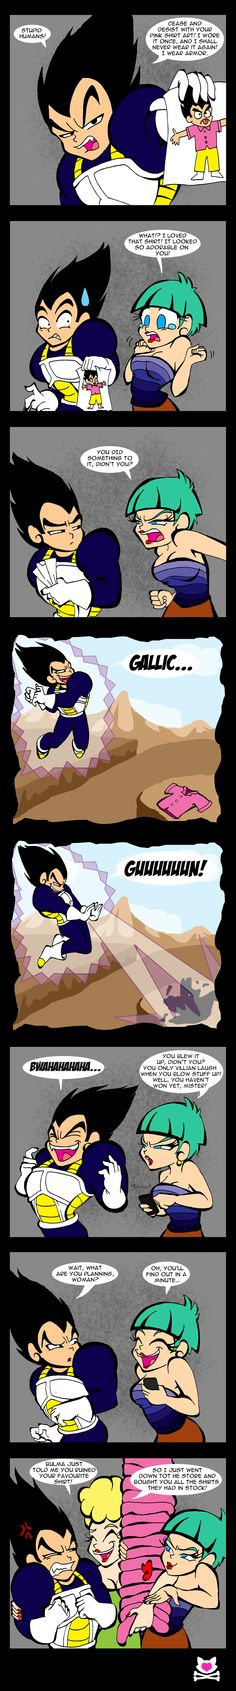 SPAM- Note to Readers: THAT Pink Shirt... by CaptainJaneHook on DeviantArt